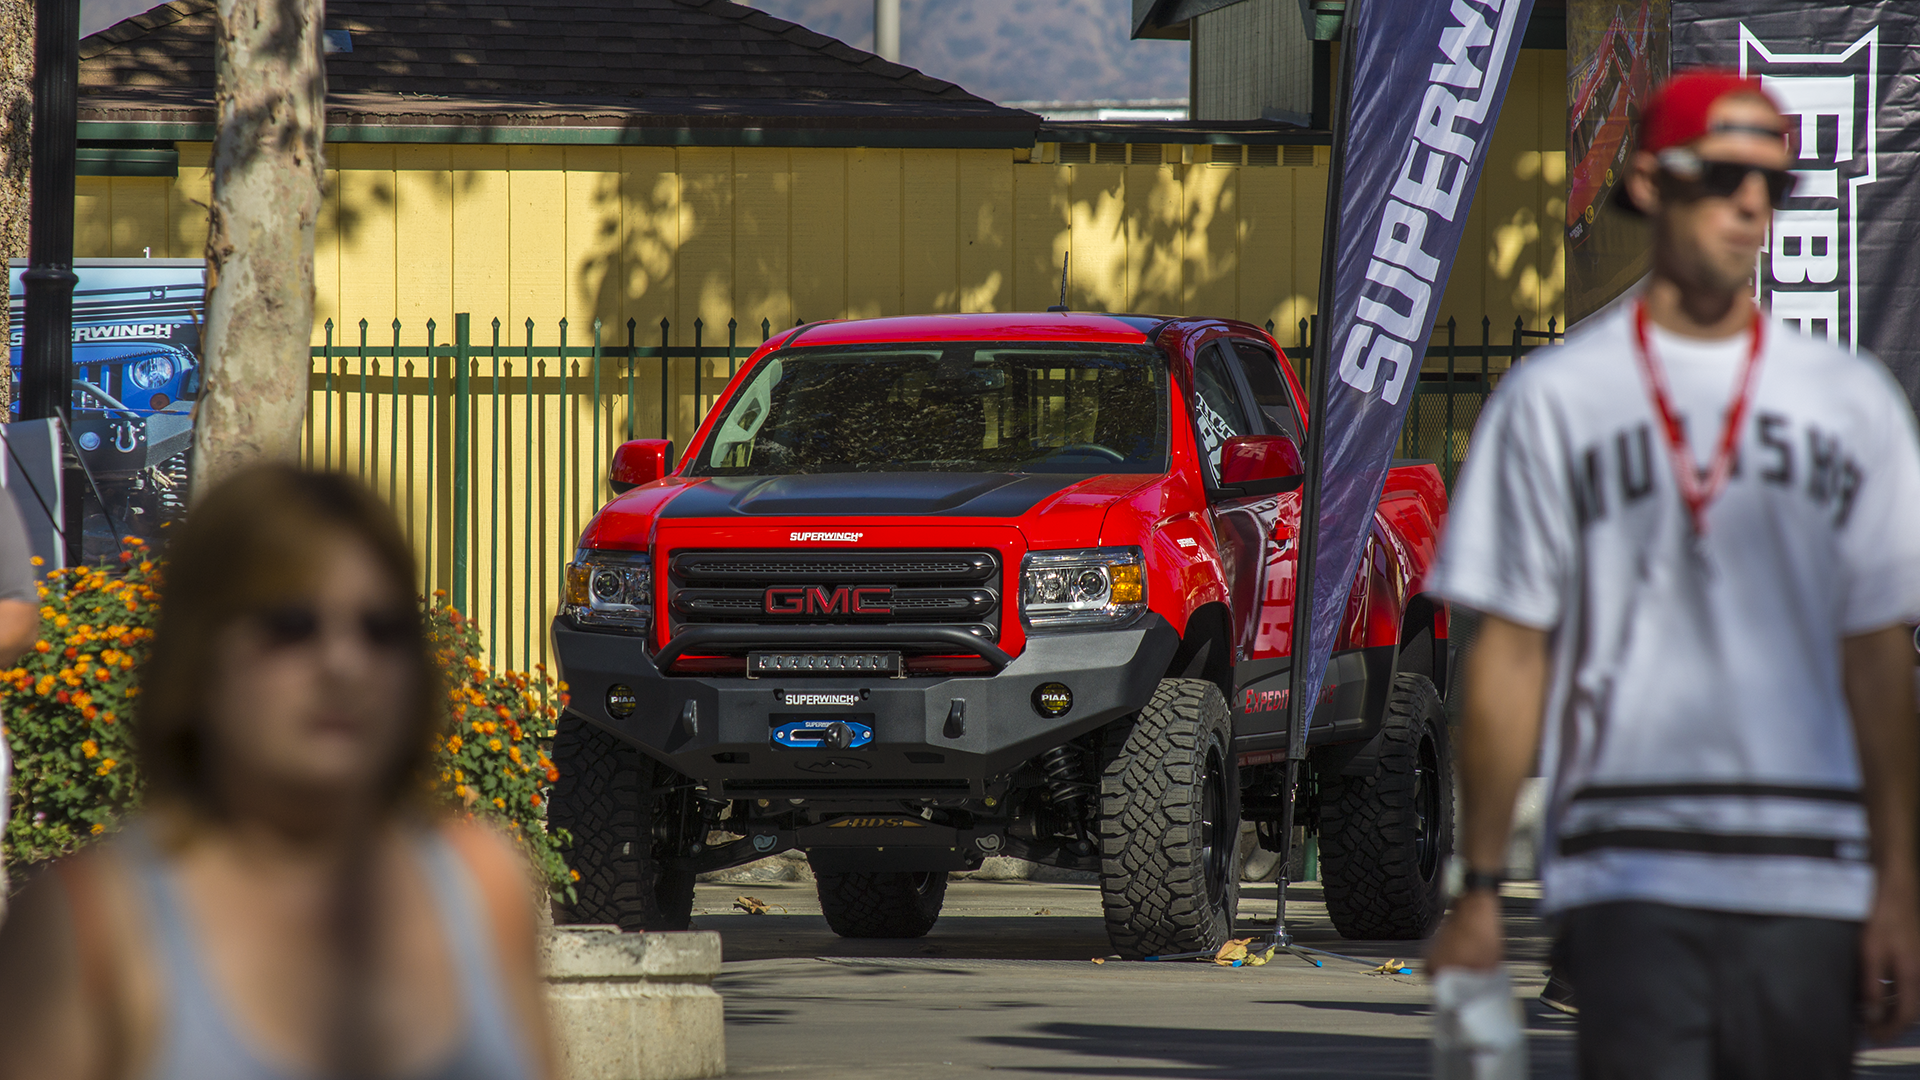 Shot Of Our Gmc Canyon Build At The Pomona Off Road Expo In